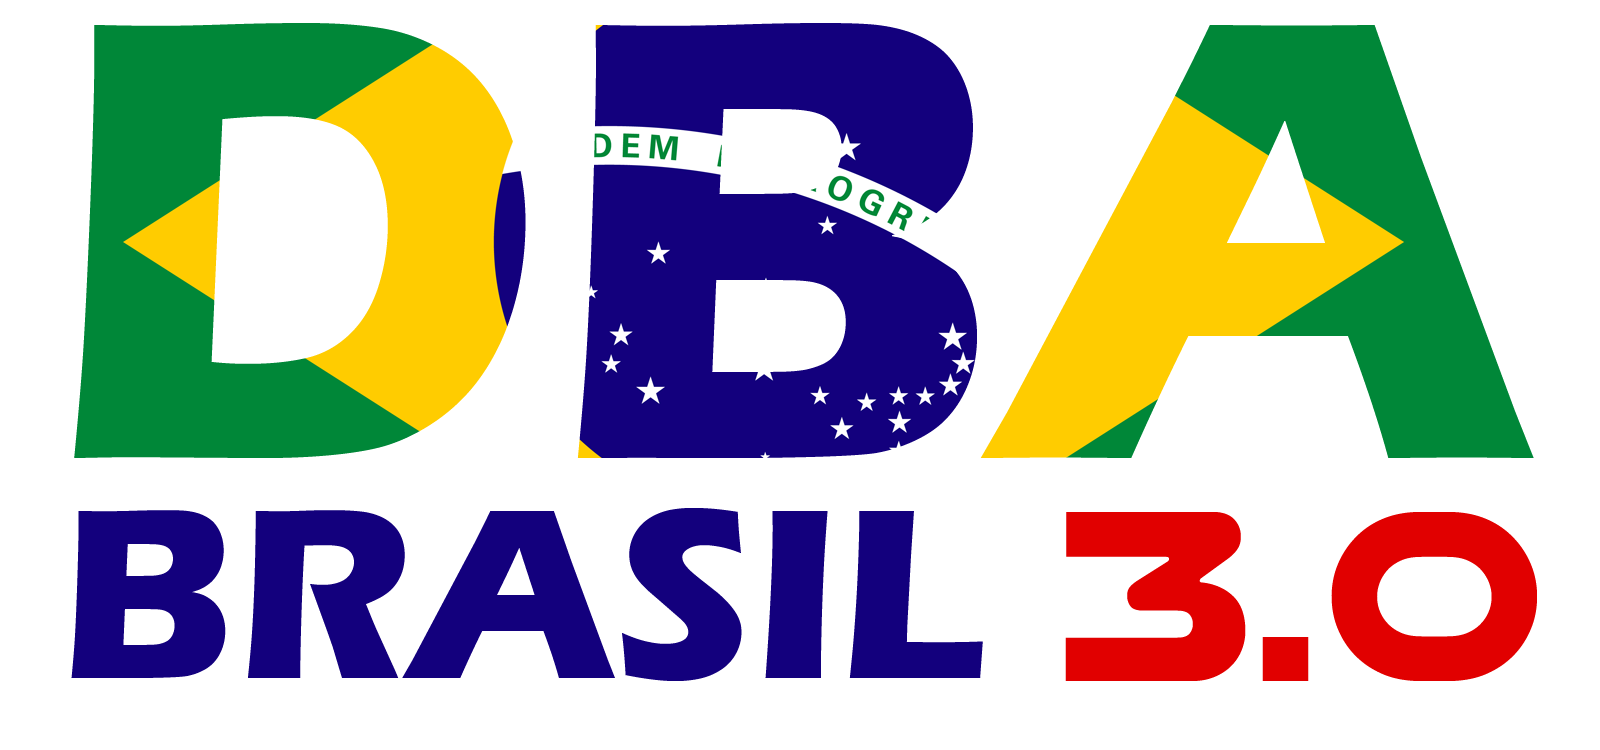 Call for Papers do DBA BRASIL 3.0